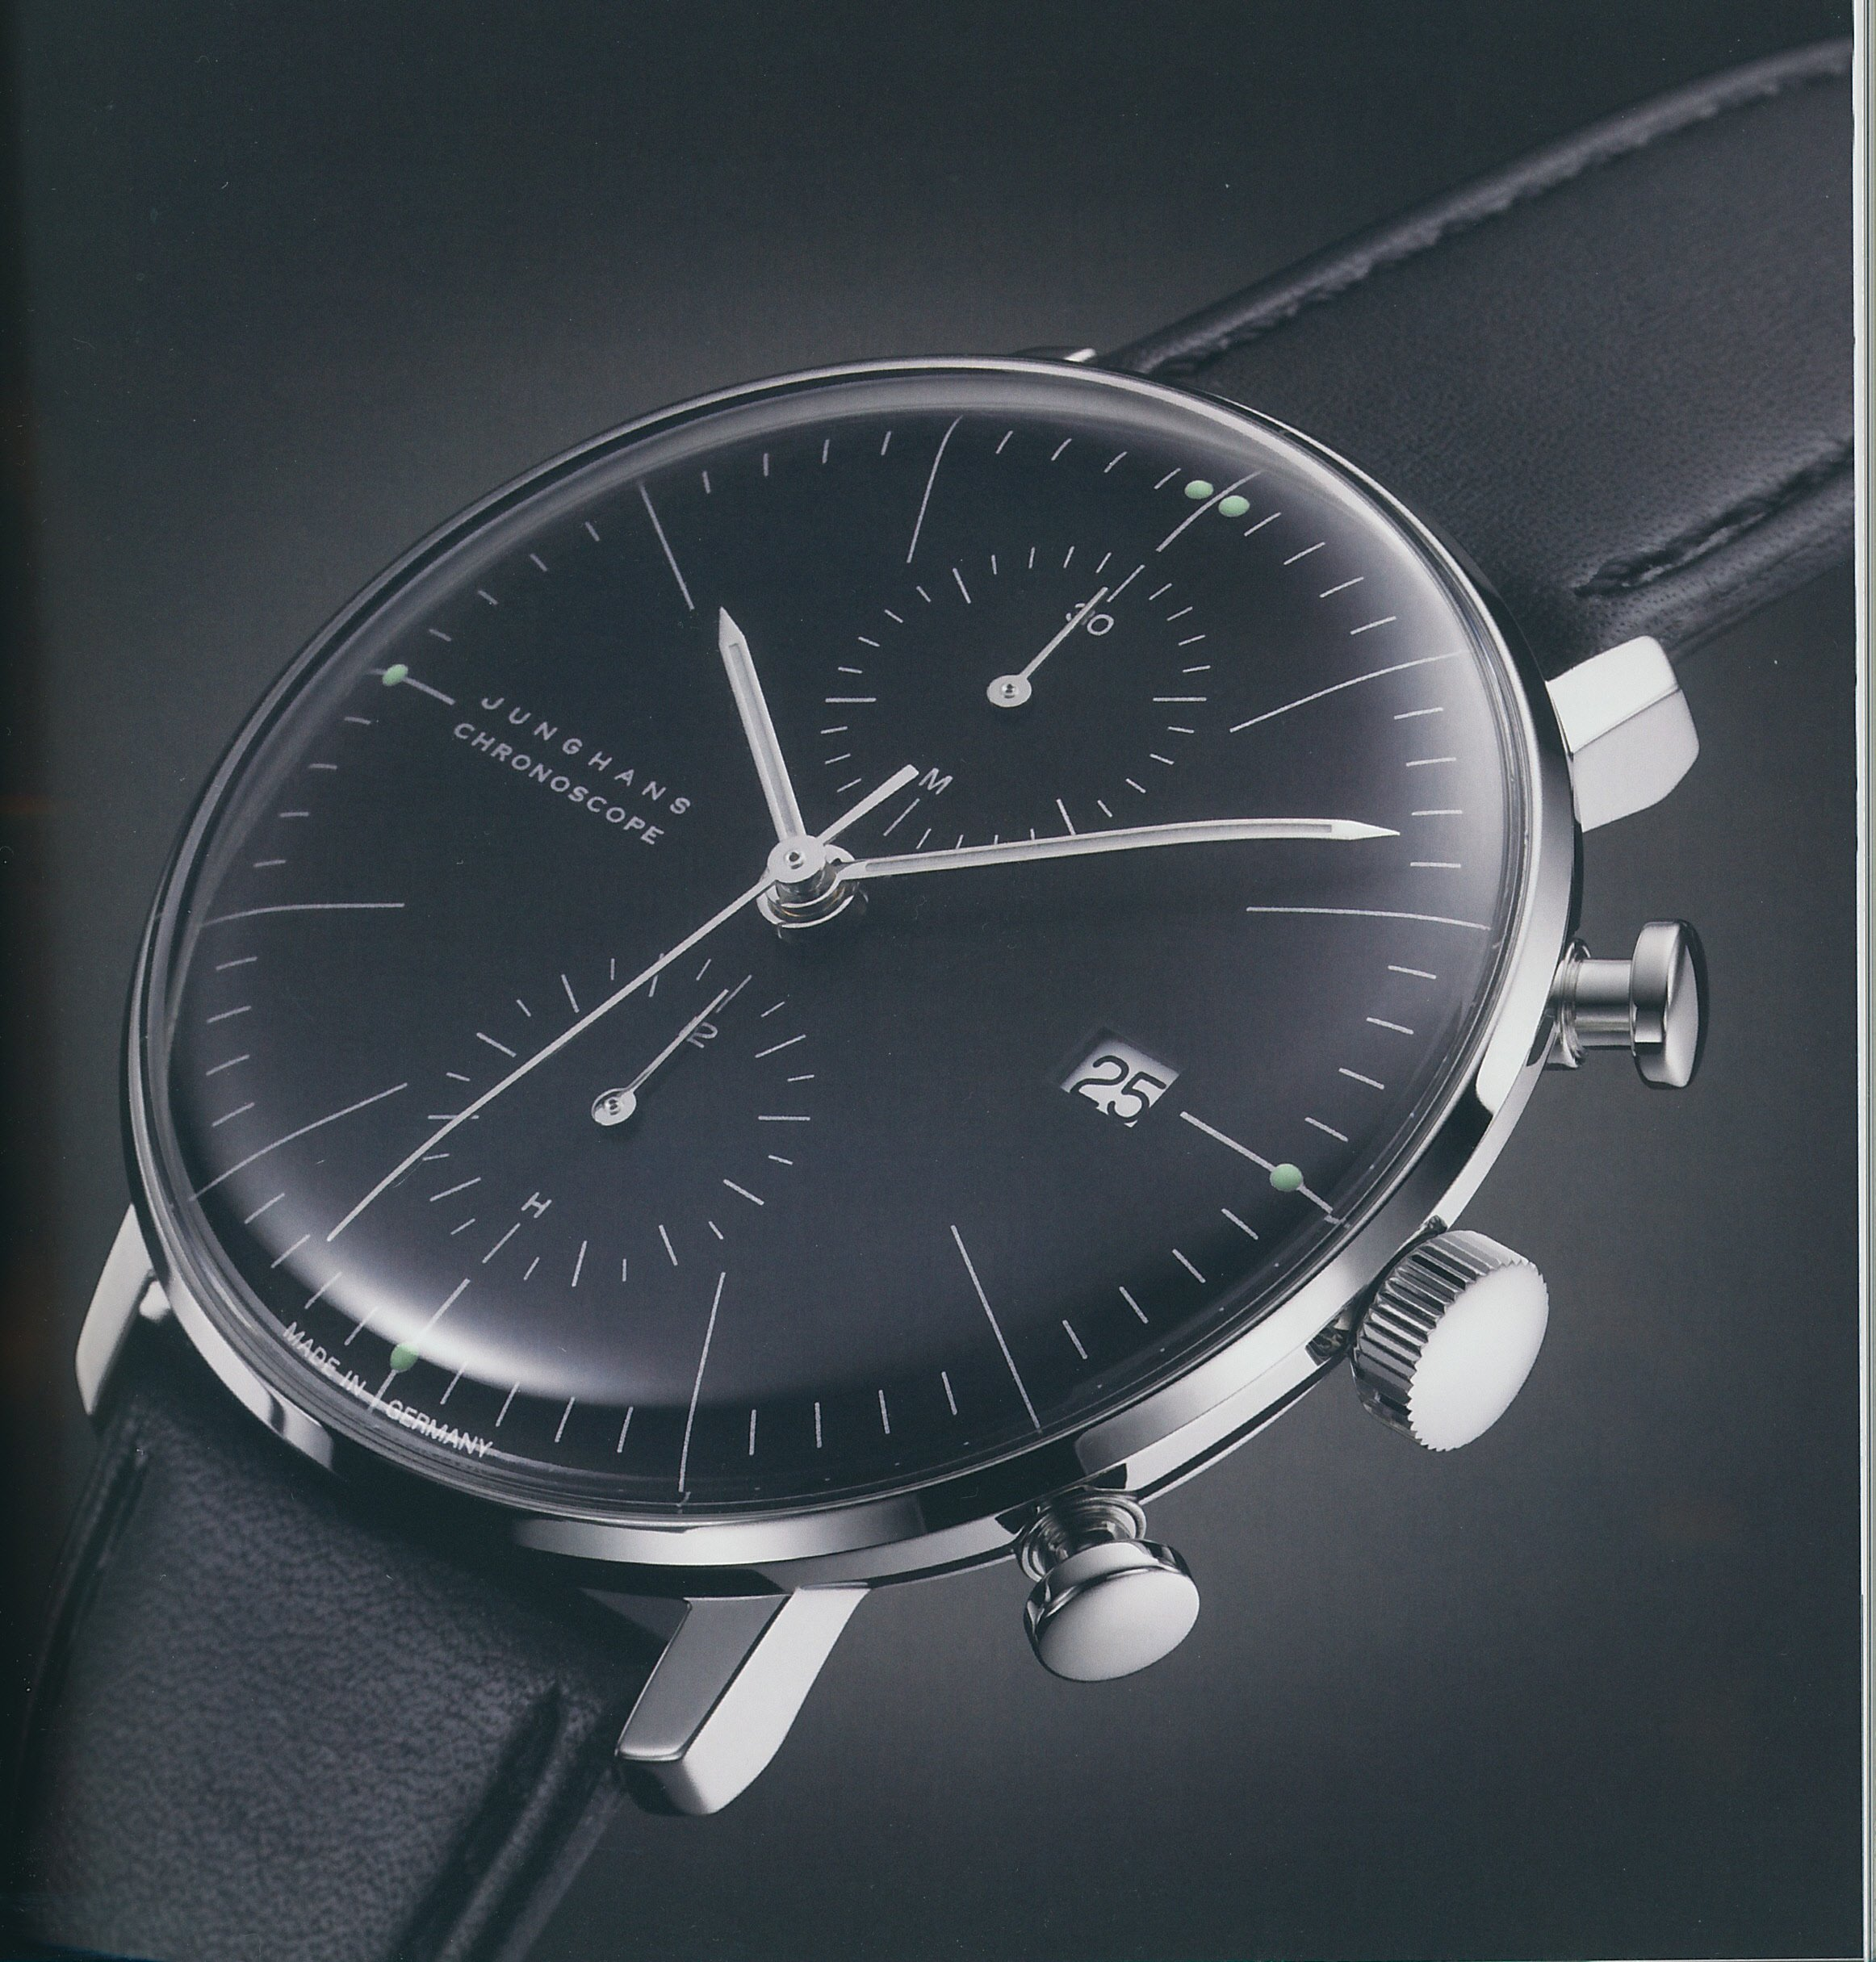 JUNGHANS Germany Since 1861 GERMAN WATCH COLLECTION for 2014 (TEXT IN GERMAN AND ENGLISH): various: Amazon.com: Books